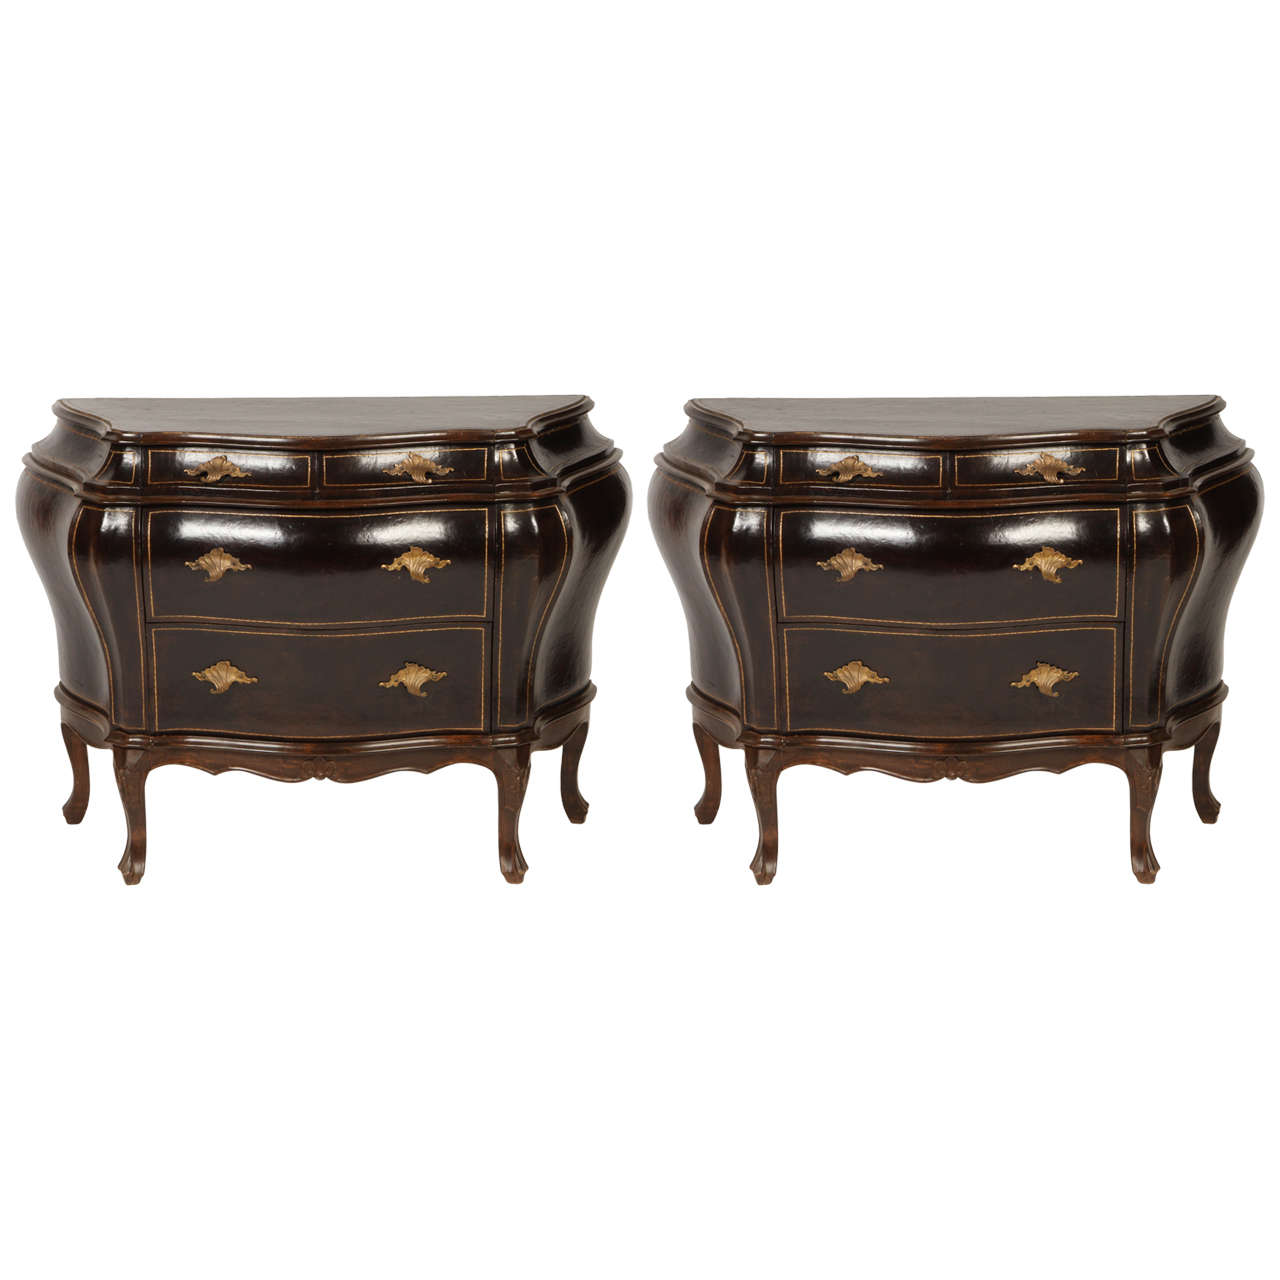 Pair of venetian rococo style commodes at 1stdibs for Rococo style furniture